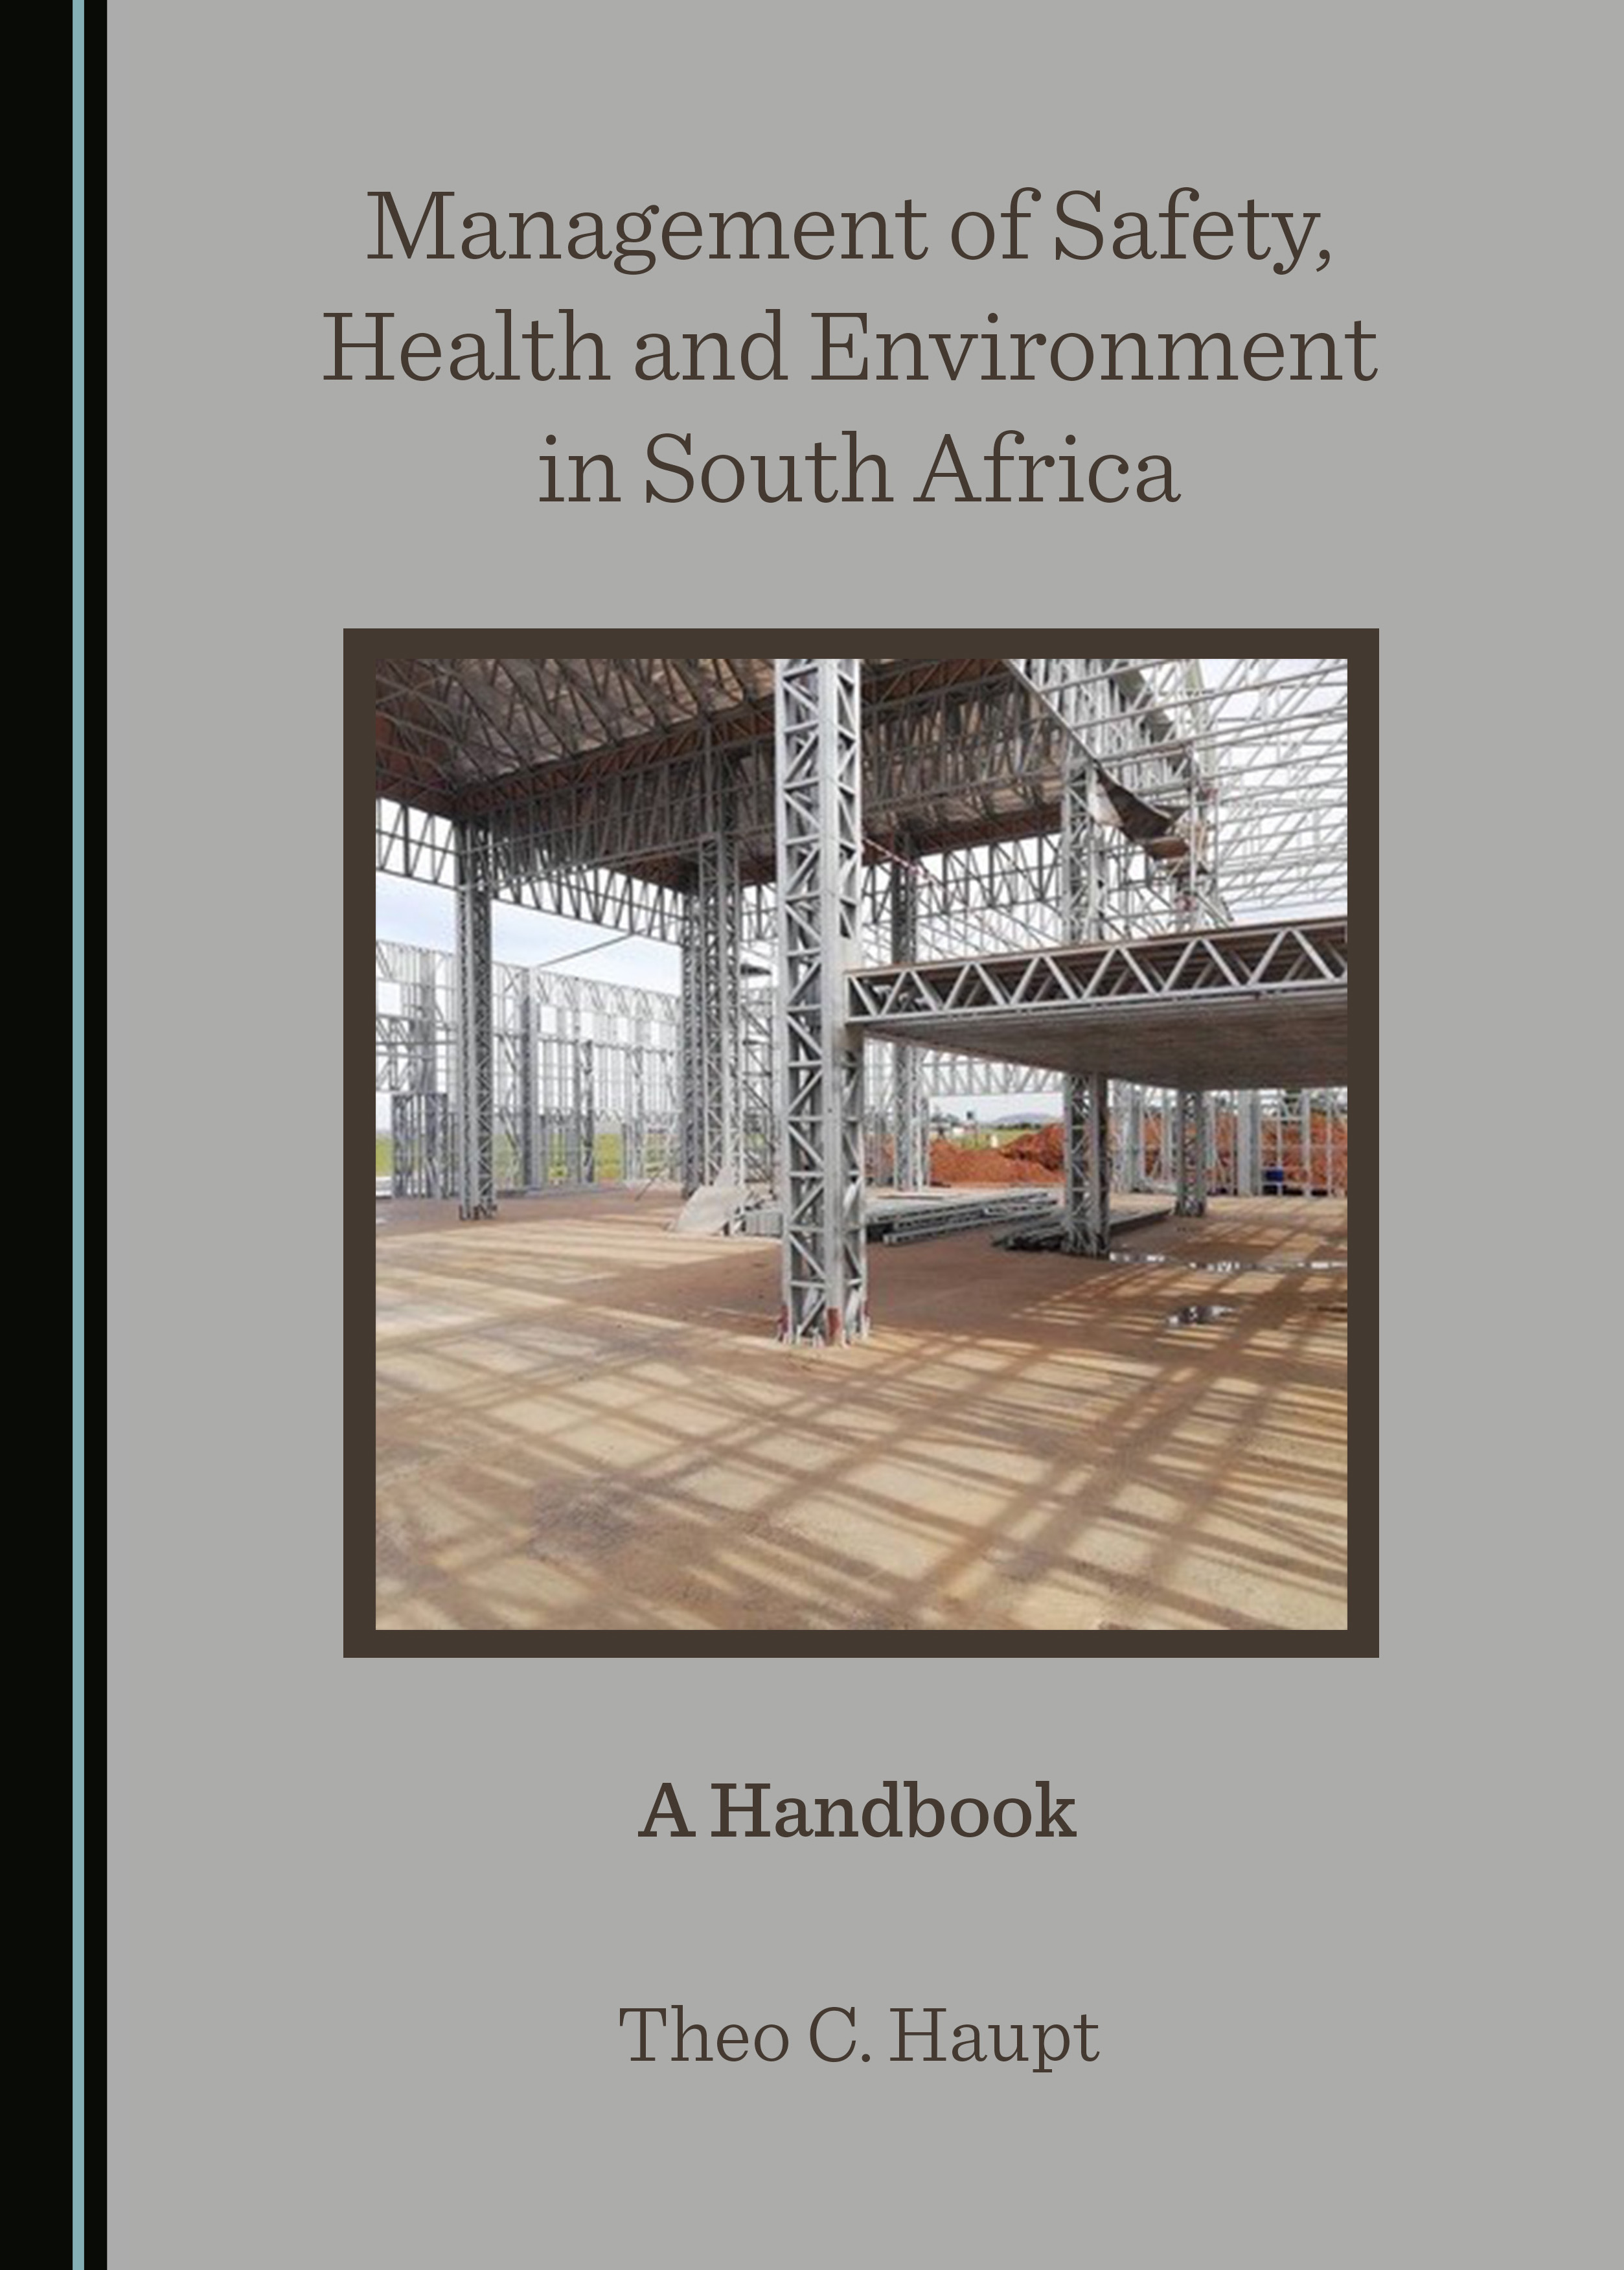 Management of Safety, Health and Environment in South Africa: A Handbook